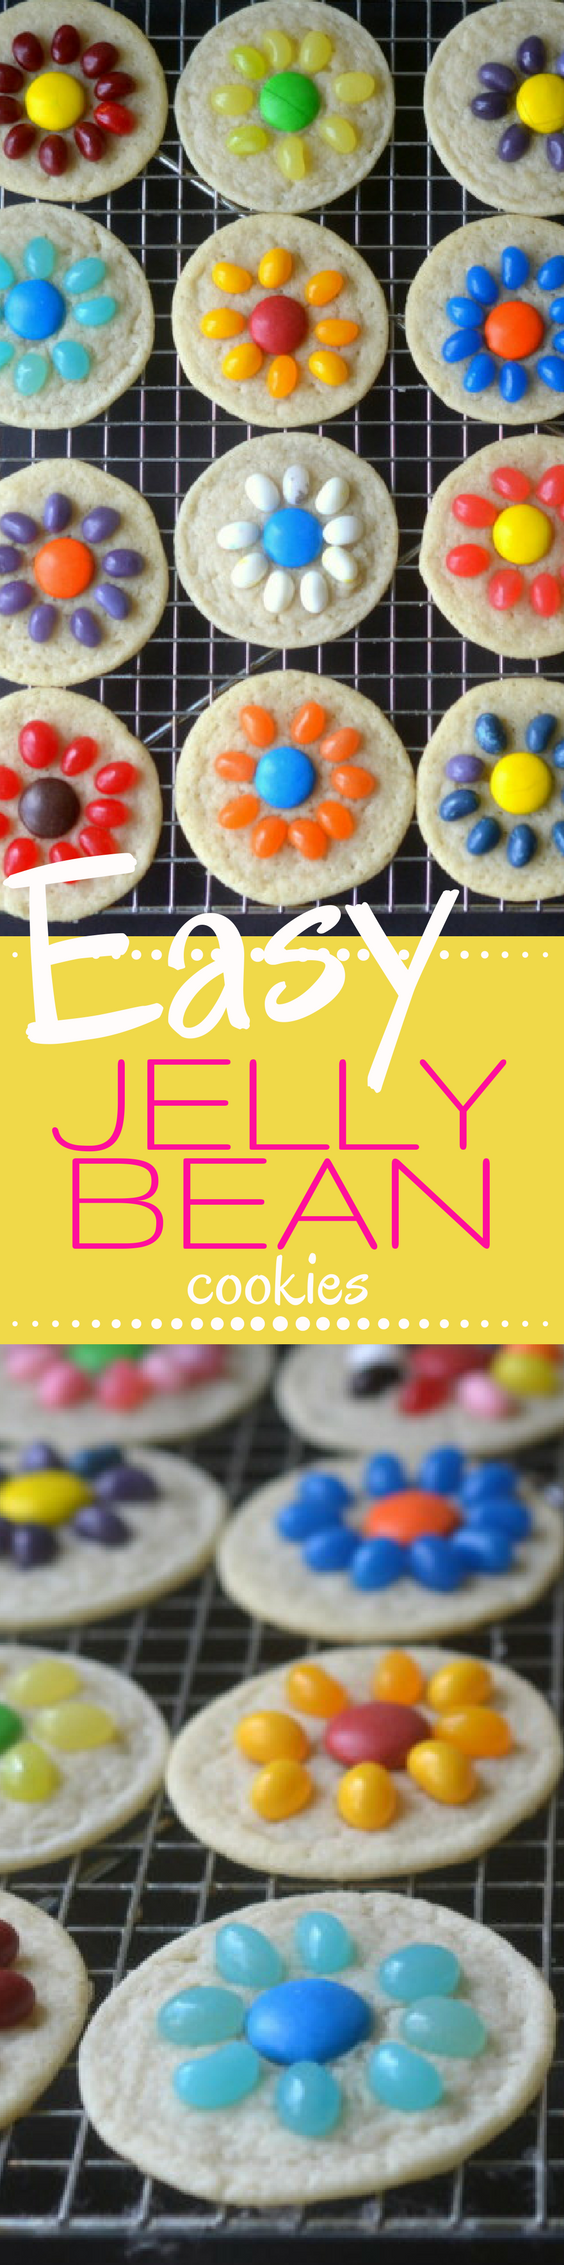 Easy Jelly Bean Flower Cookies ~ a quick and easy springtime slice and bake sugar cookie that kids can do themselves!  Great for Easter and Mother's Day. |easy dessert | kid's cooking | shortbread | candy |